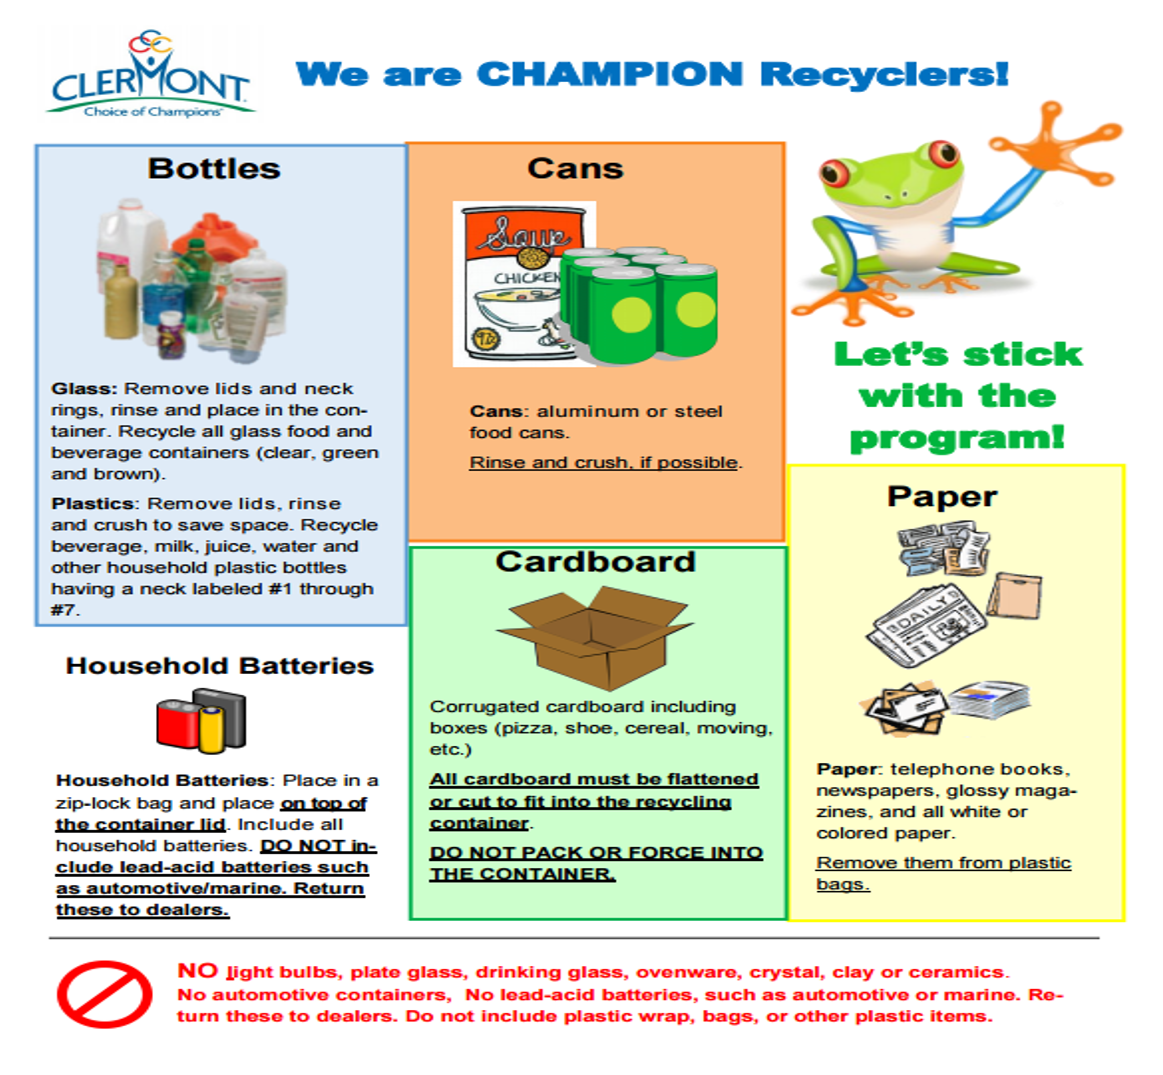 We are Champion Recyclers